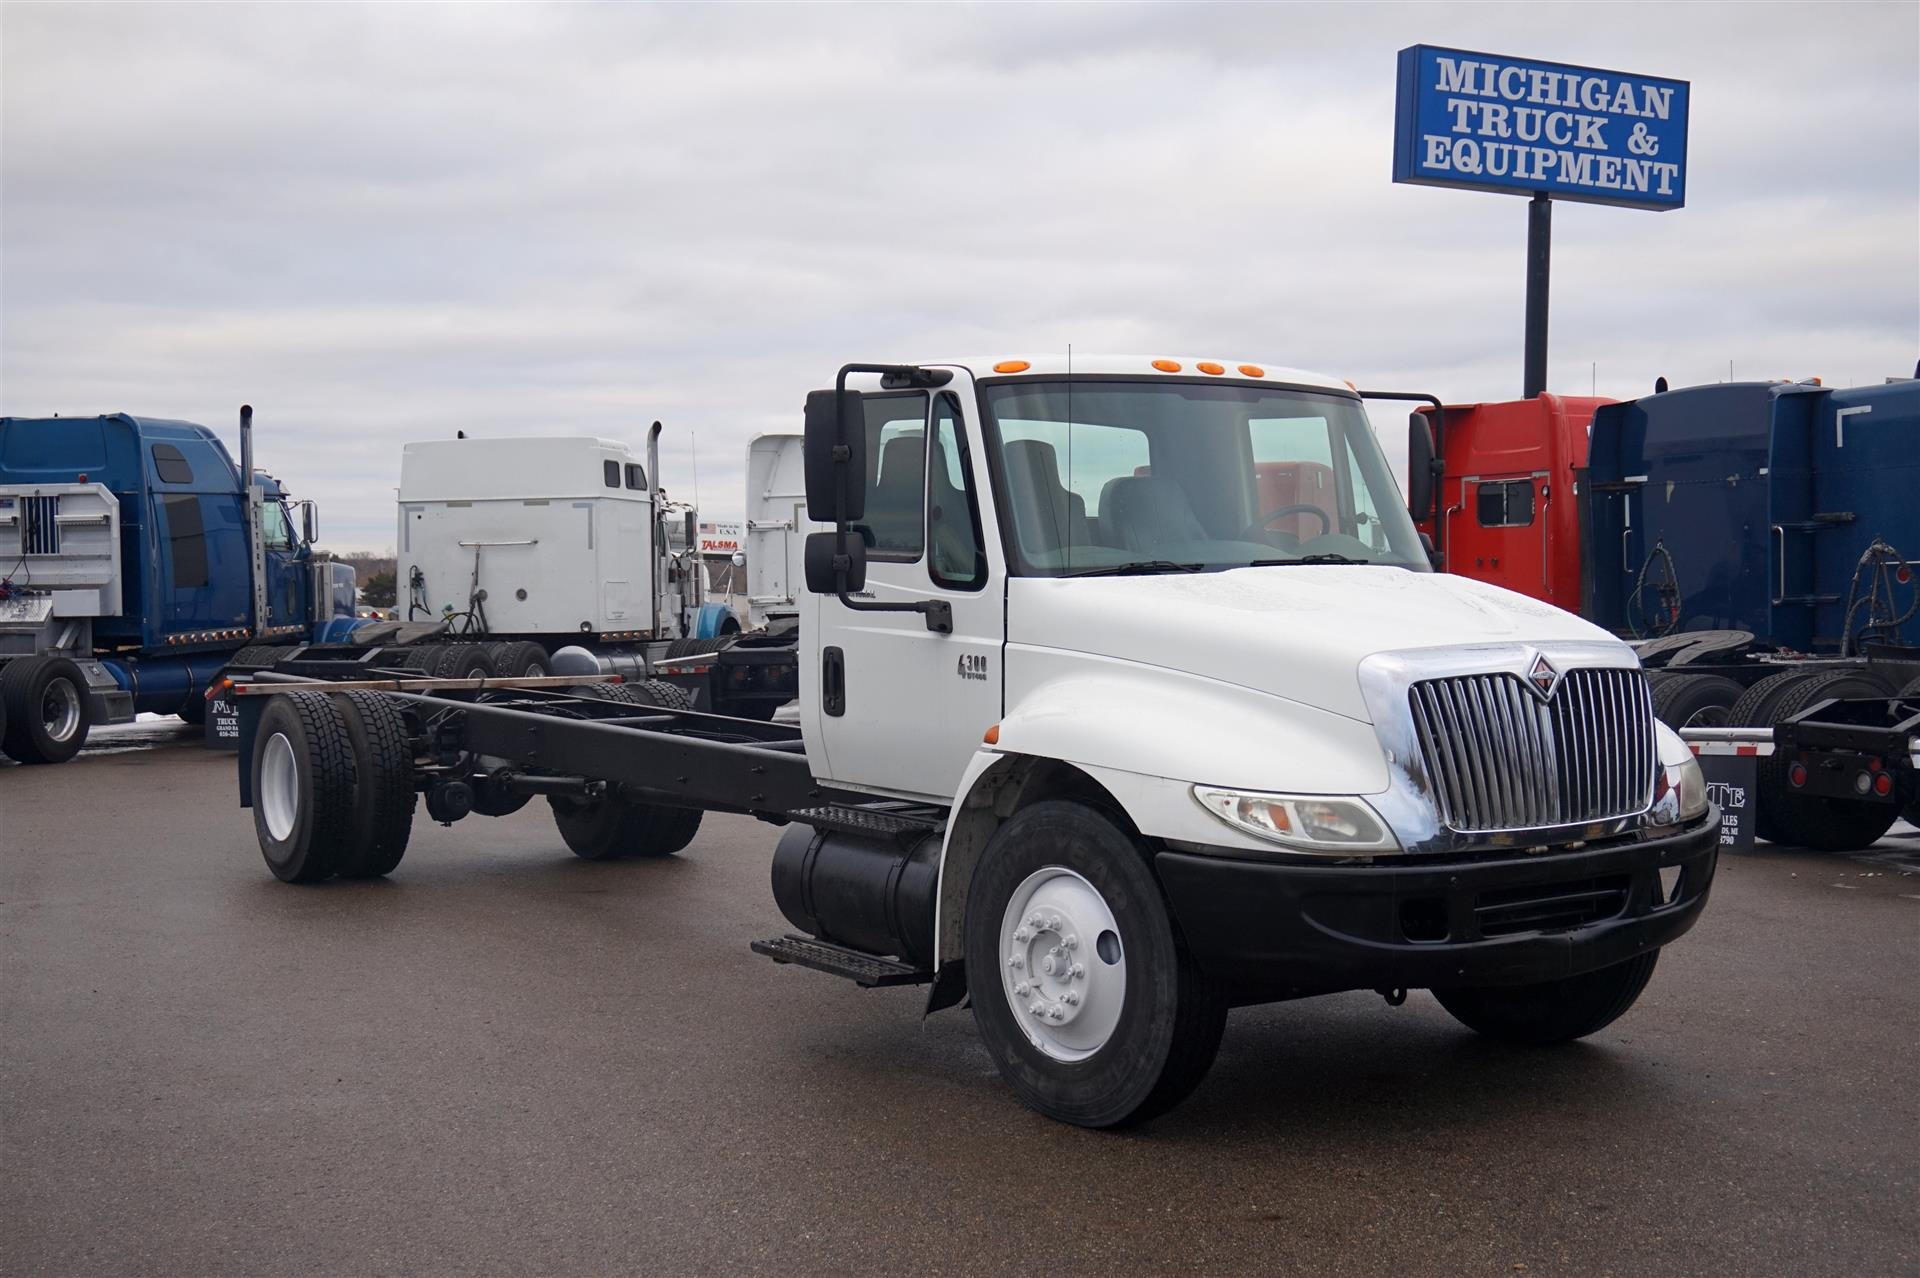 2005 International 4300 Cab Chassis Truck